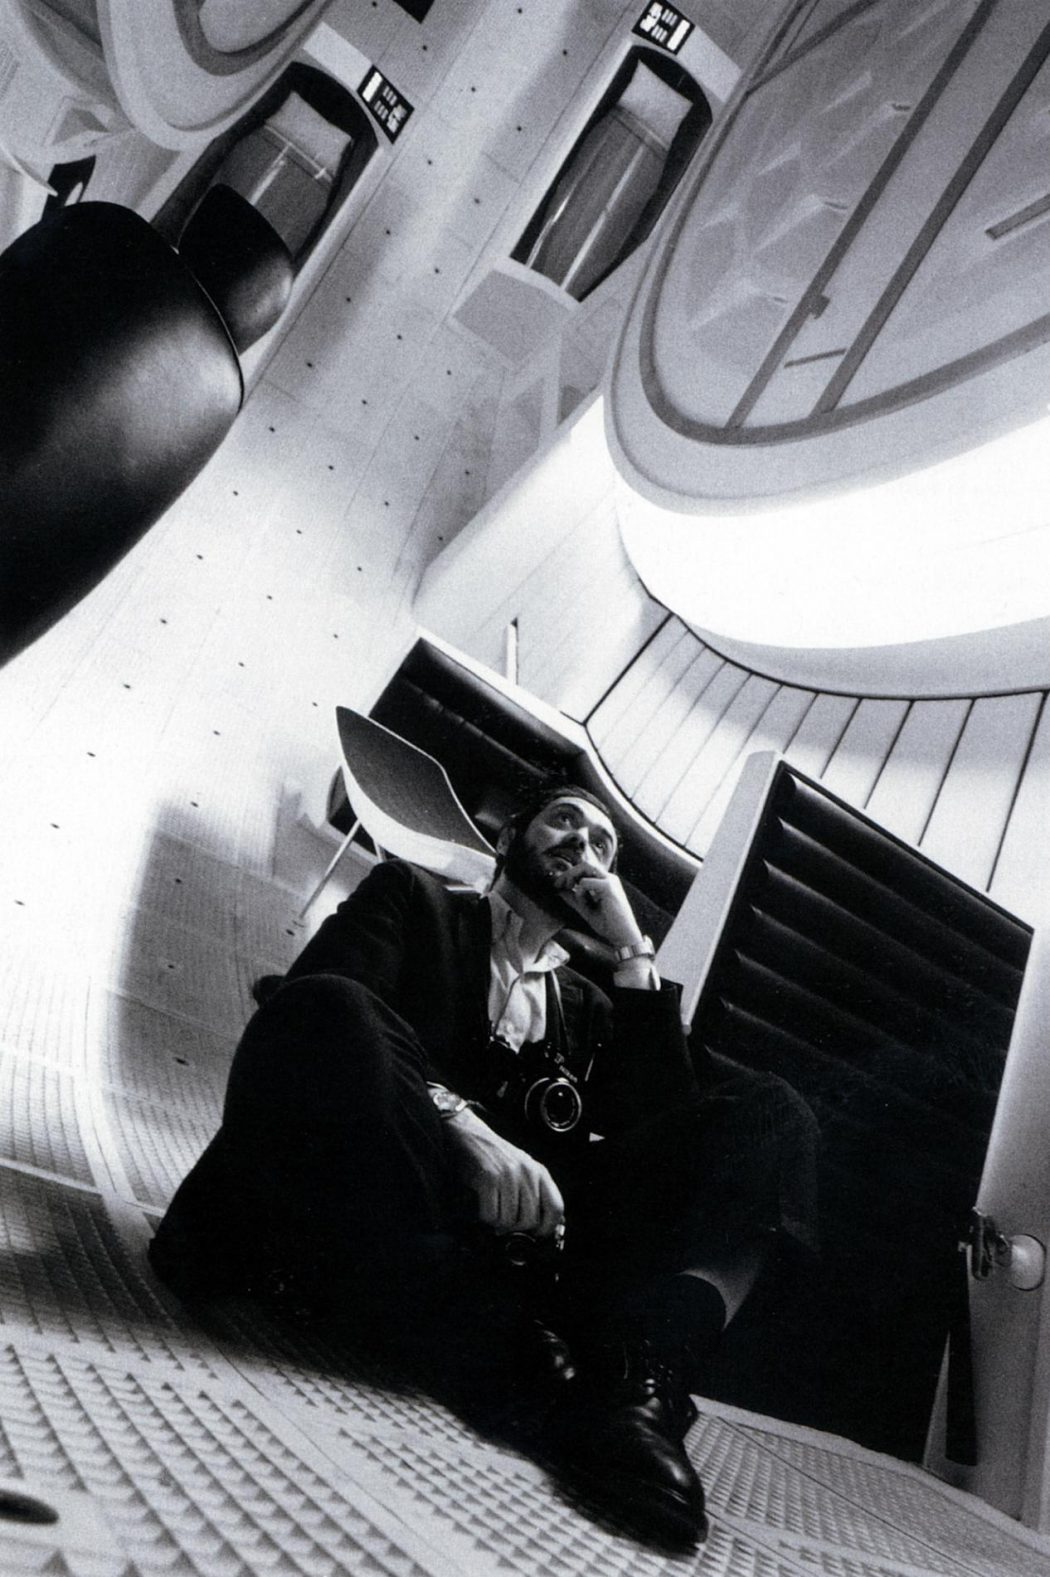 2001: A Space Odyssey is a pioneering work of filmmaking art, Kubrick's greatest achievement and certainly one of the most influential exhibits of filmmaking craft in the history of cinema. Just as bedazzling as it was back in the sixties, this film is an experience unlike any other, regardless of the angle you approach it from. Production still photographers: Kevin Bray & John Jay